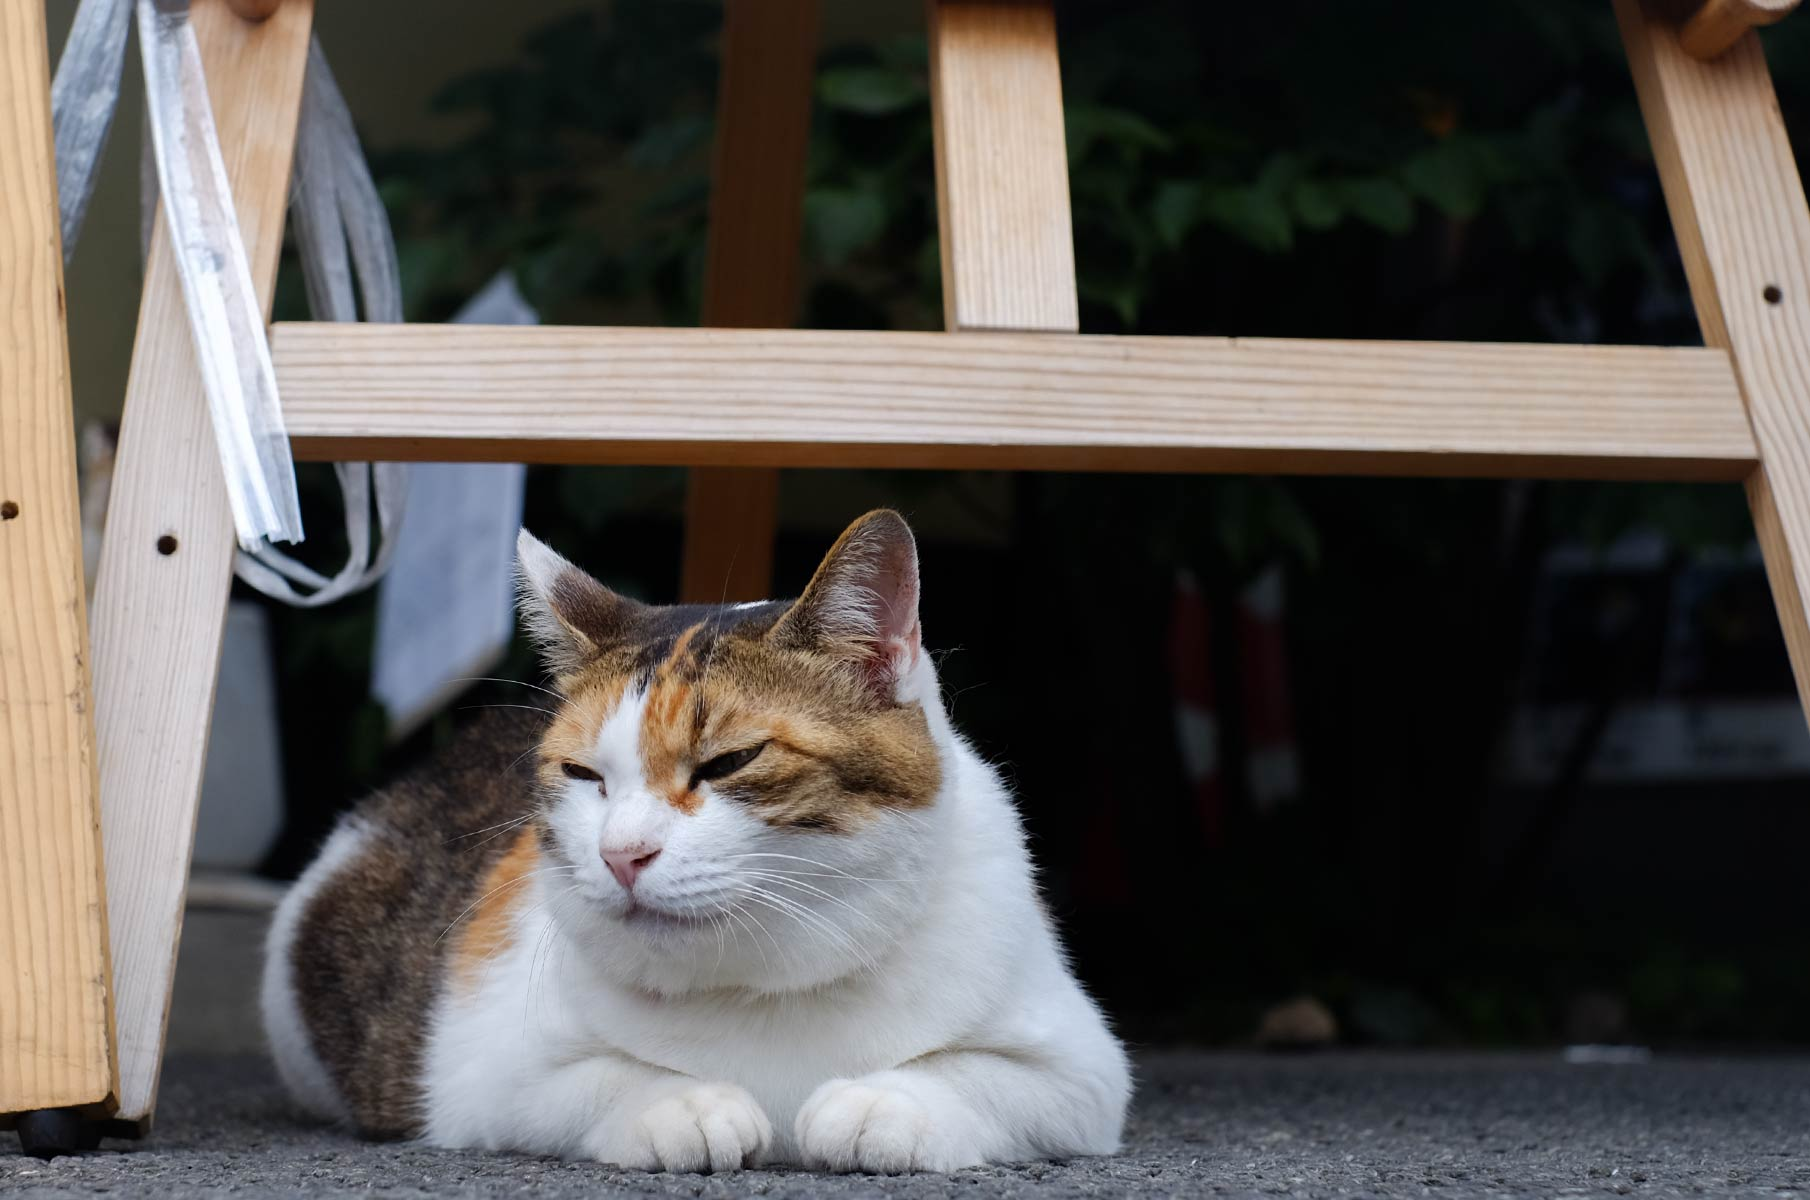 Grumpy cat in Hakone Gora, Japan